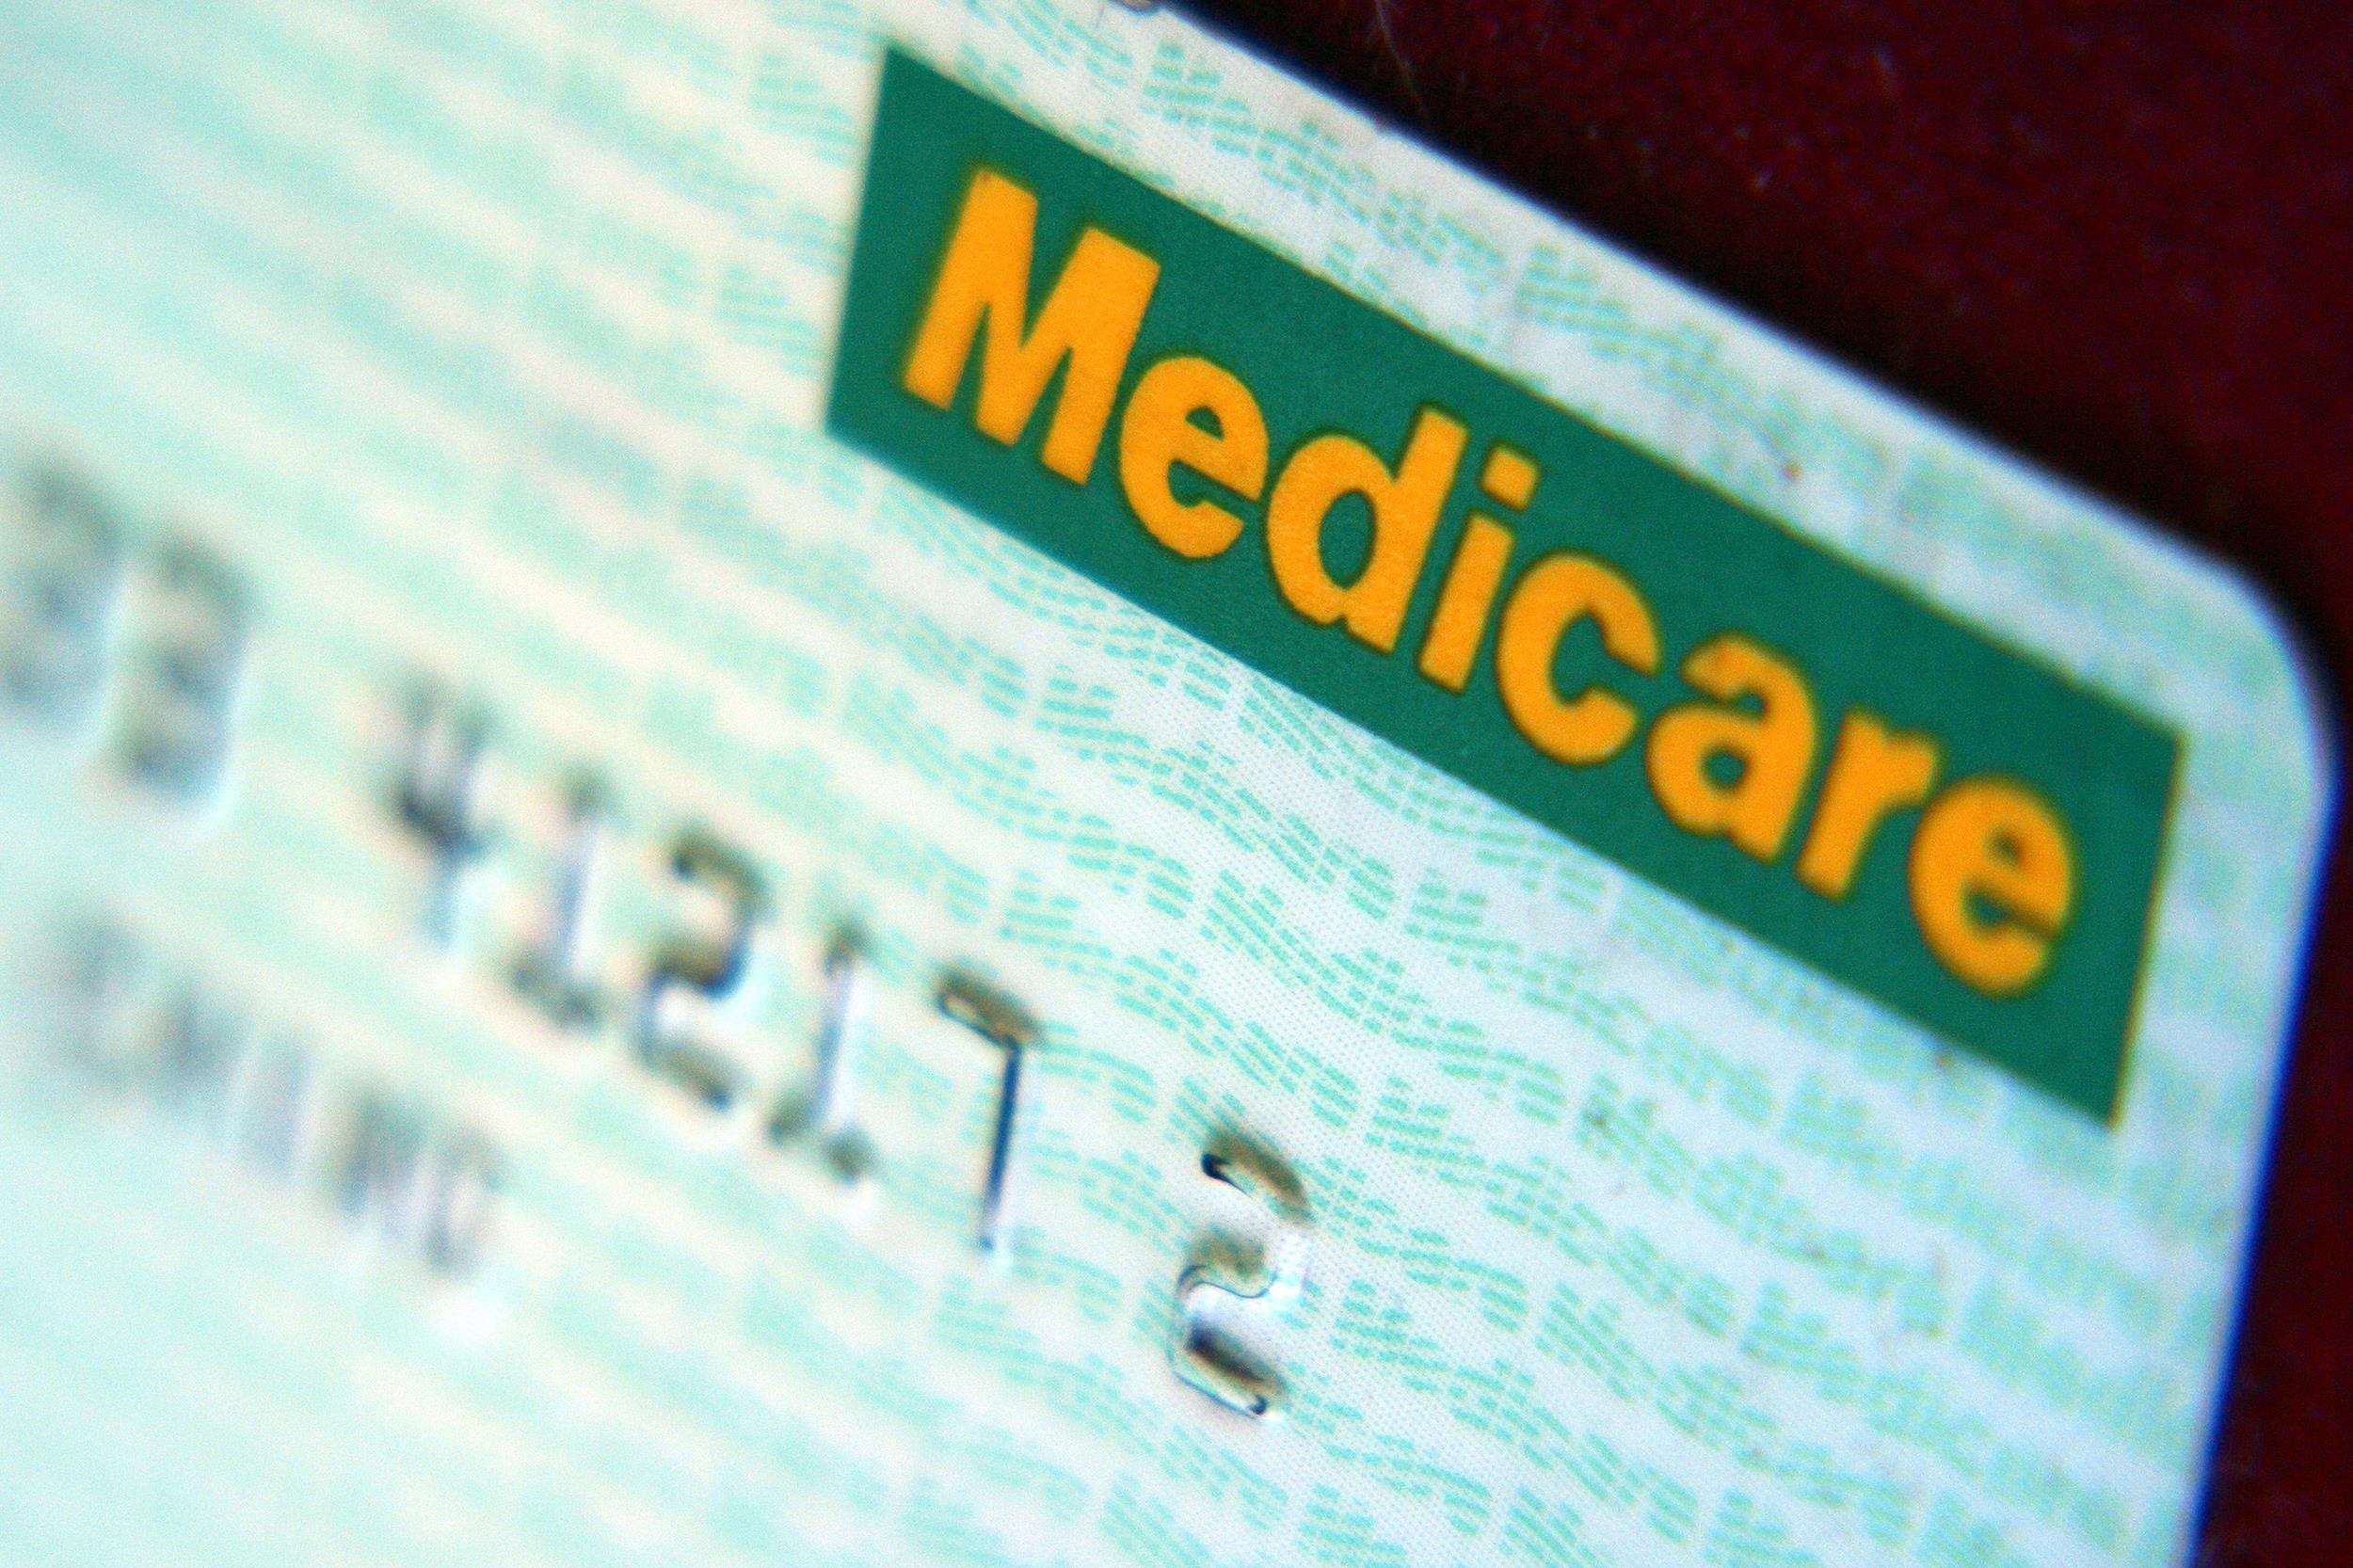 Medicare Starts Replacing Social Security Numbers on ID Cards ...